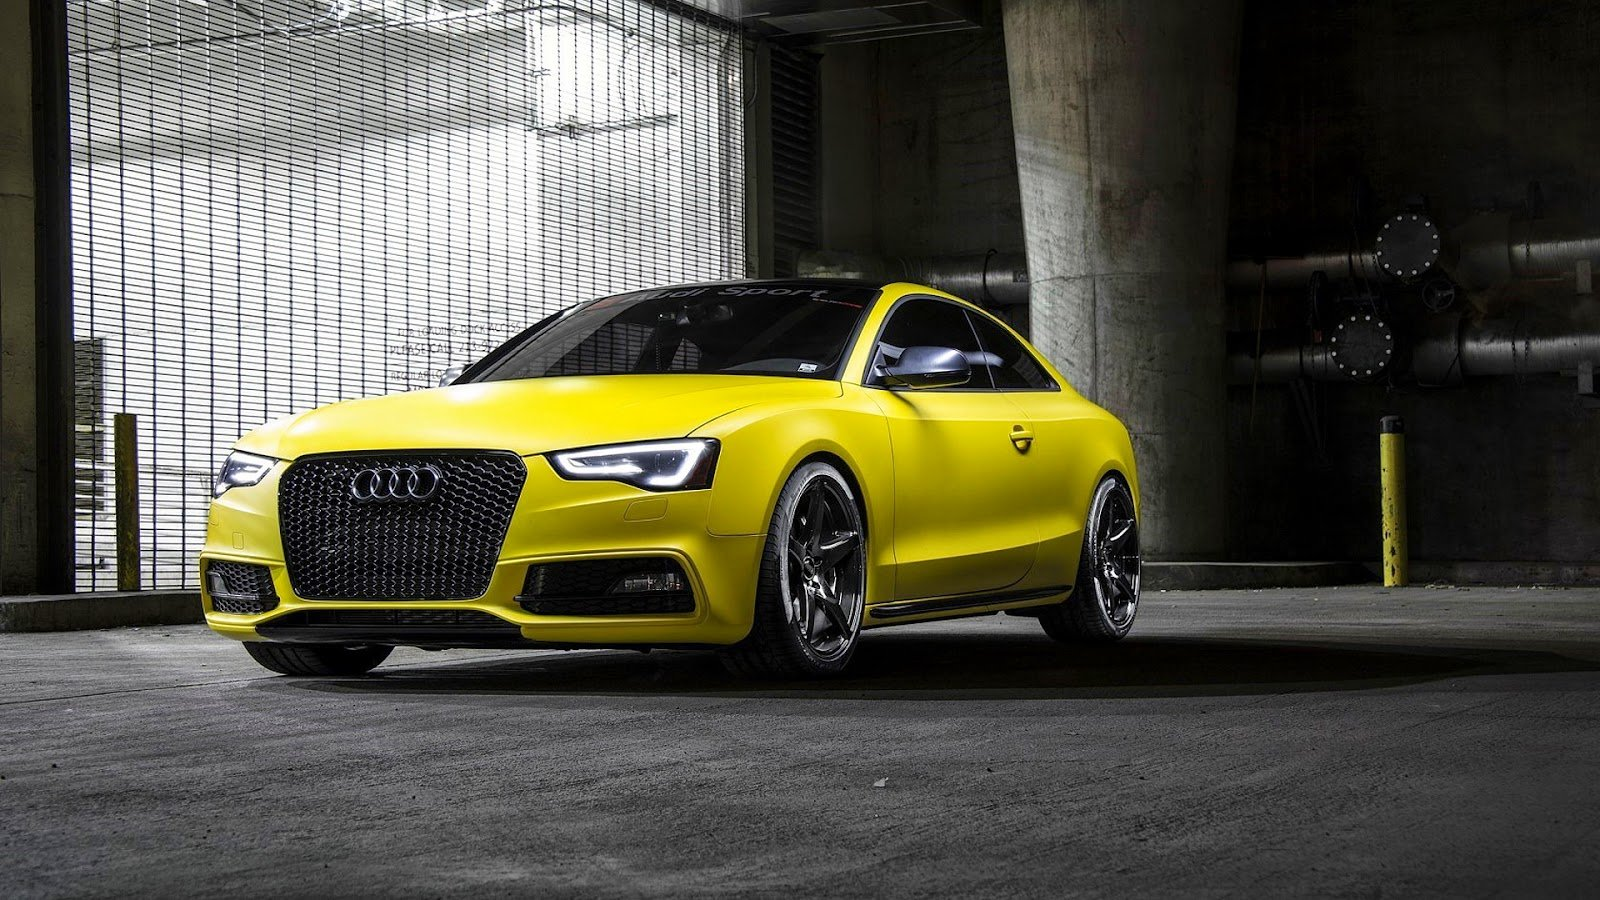 Latest Audi Cars Hd Wallpapers Hd Wallpaper With Cars Free Download